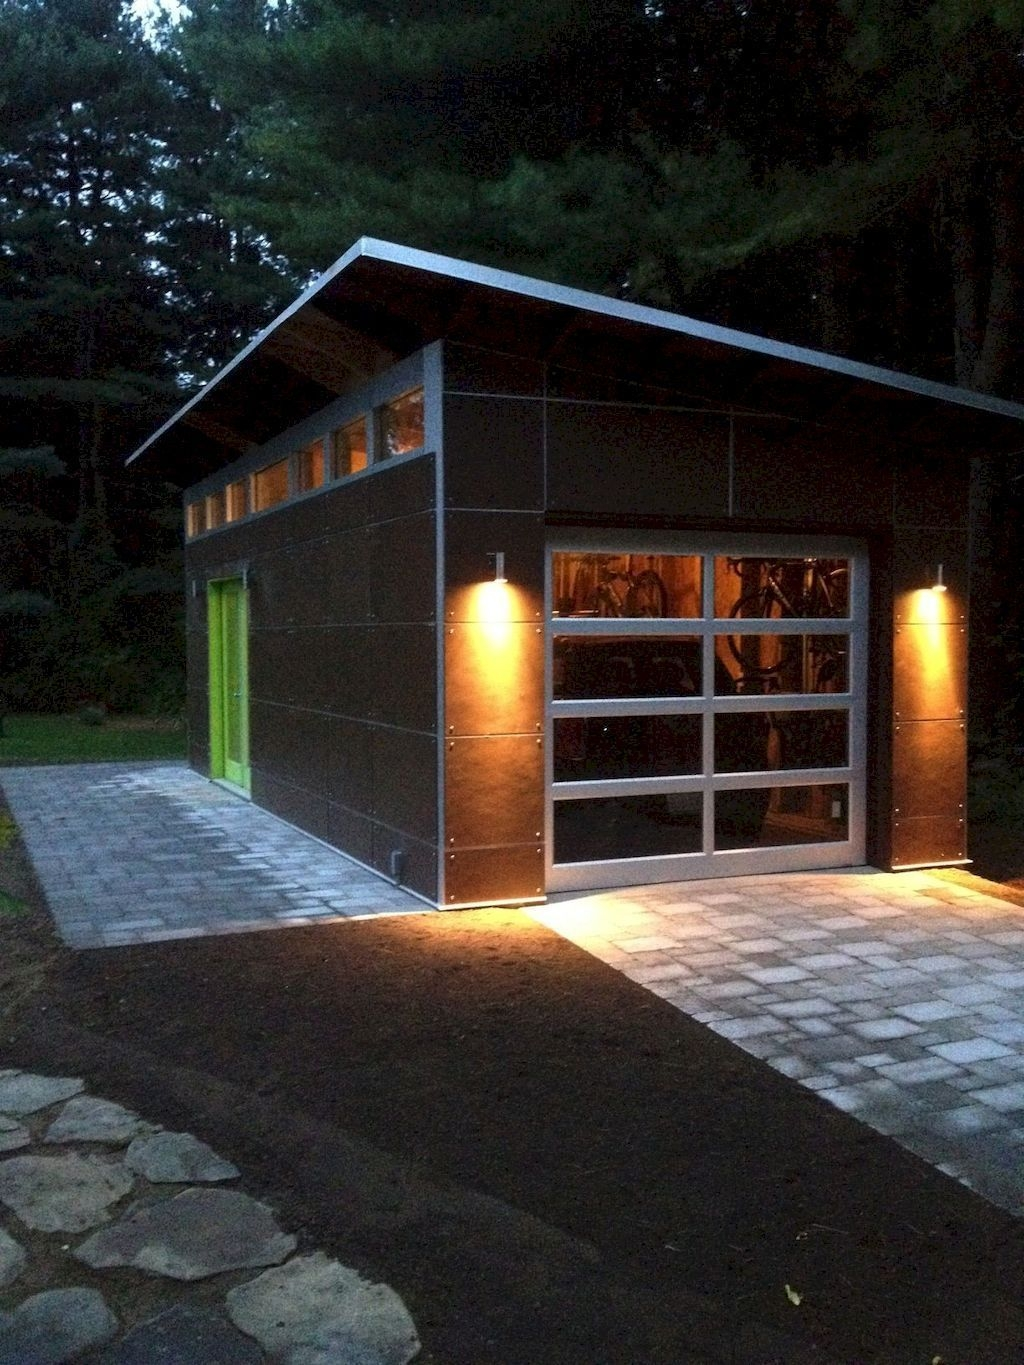 Cute Home Garage Design Ideas For Your Minimalist Home05